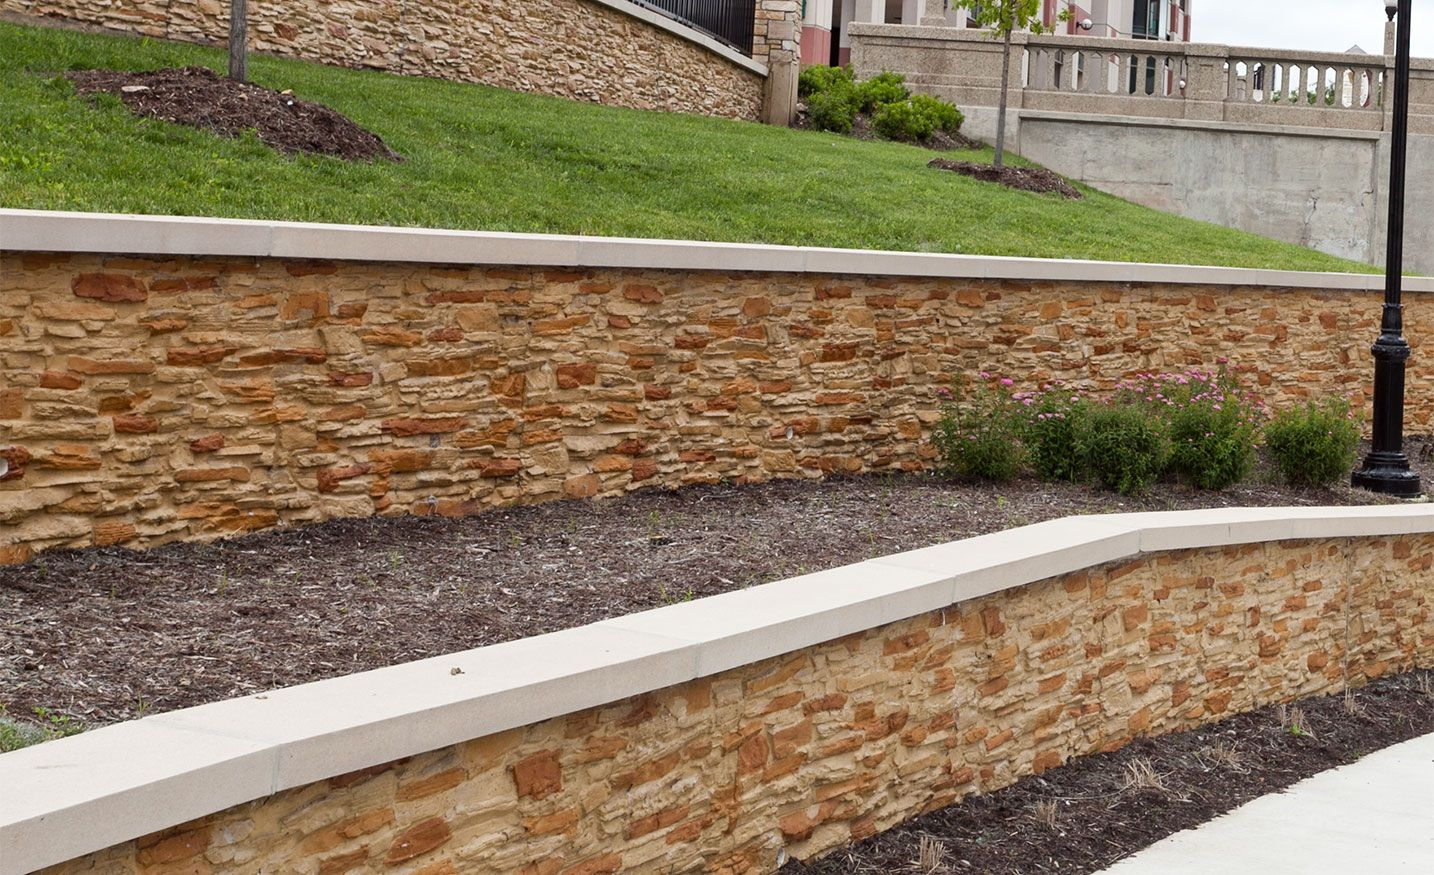 Concrete Retaining Wall Ozinga Concrete Concrete Block Walls Concrete Retaining Walls Decorative Concrete Blocks